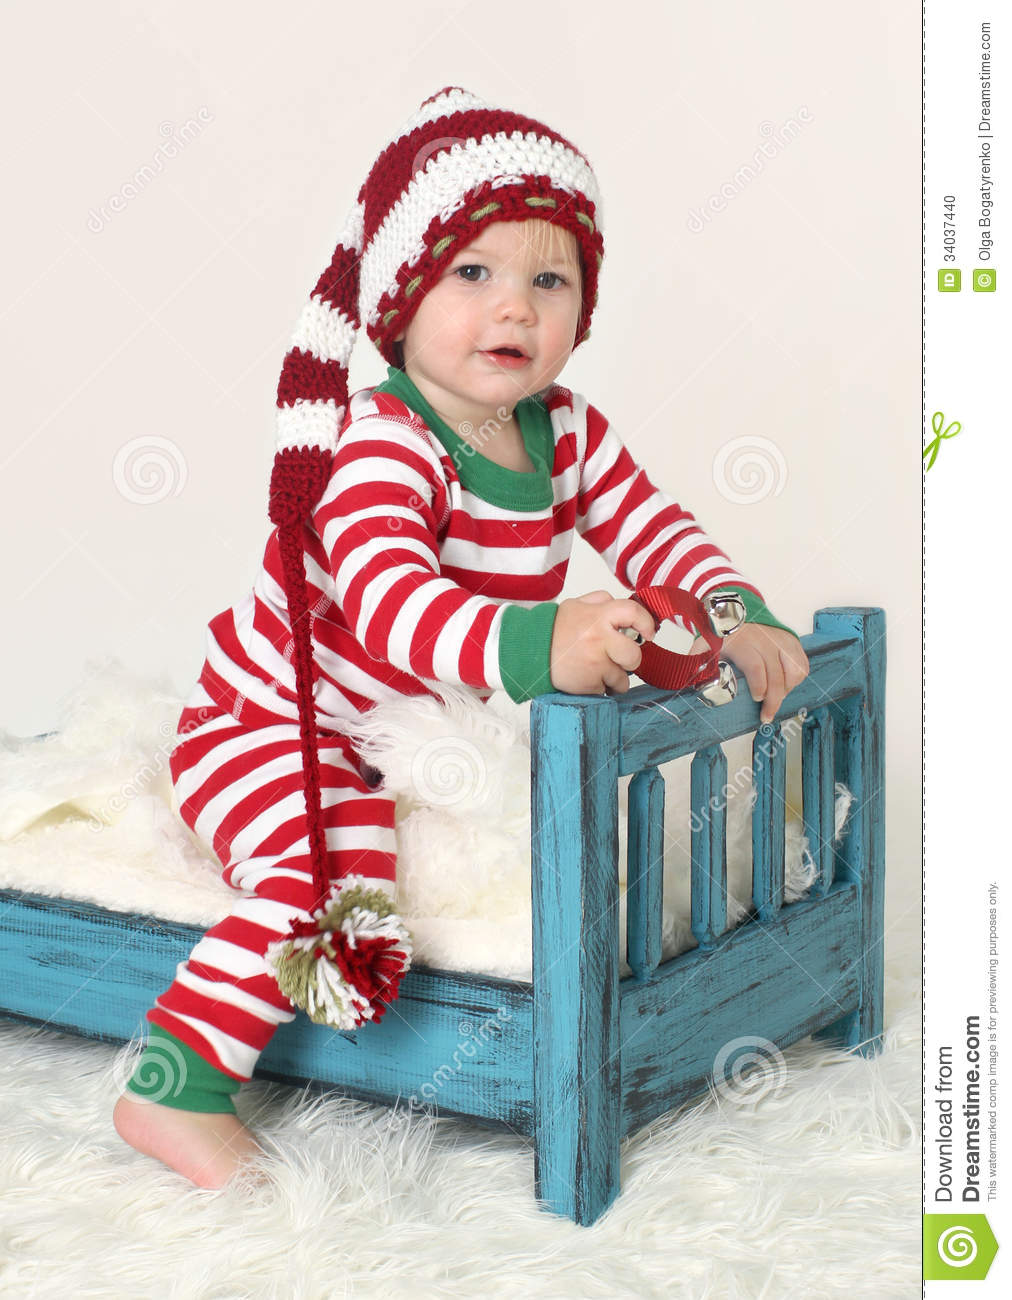 Baby Christmas Outfit Elf Hat Stock Photo - Image: 34037440